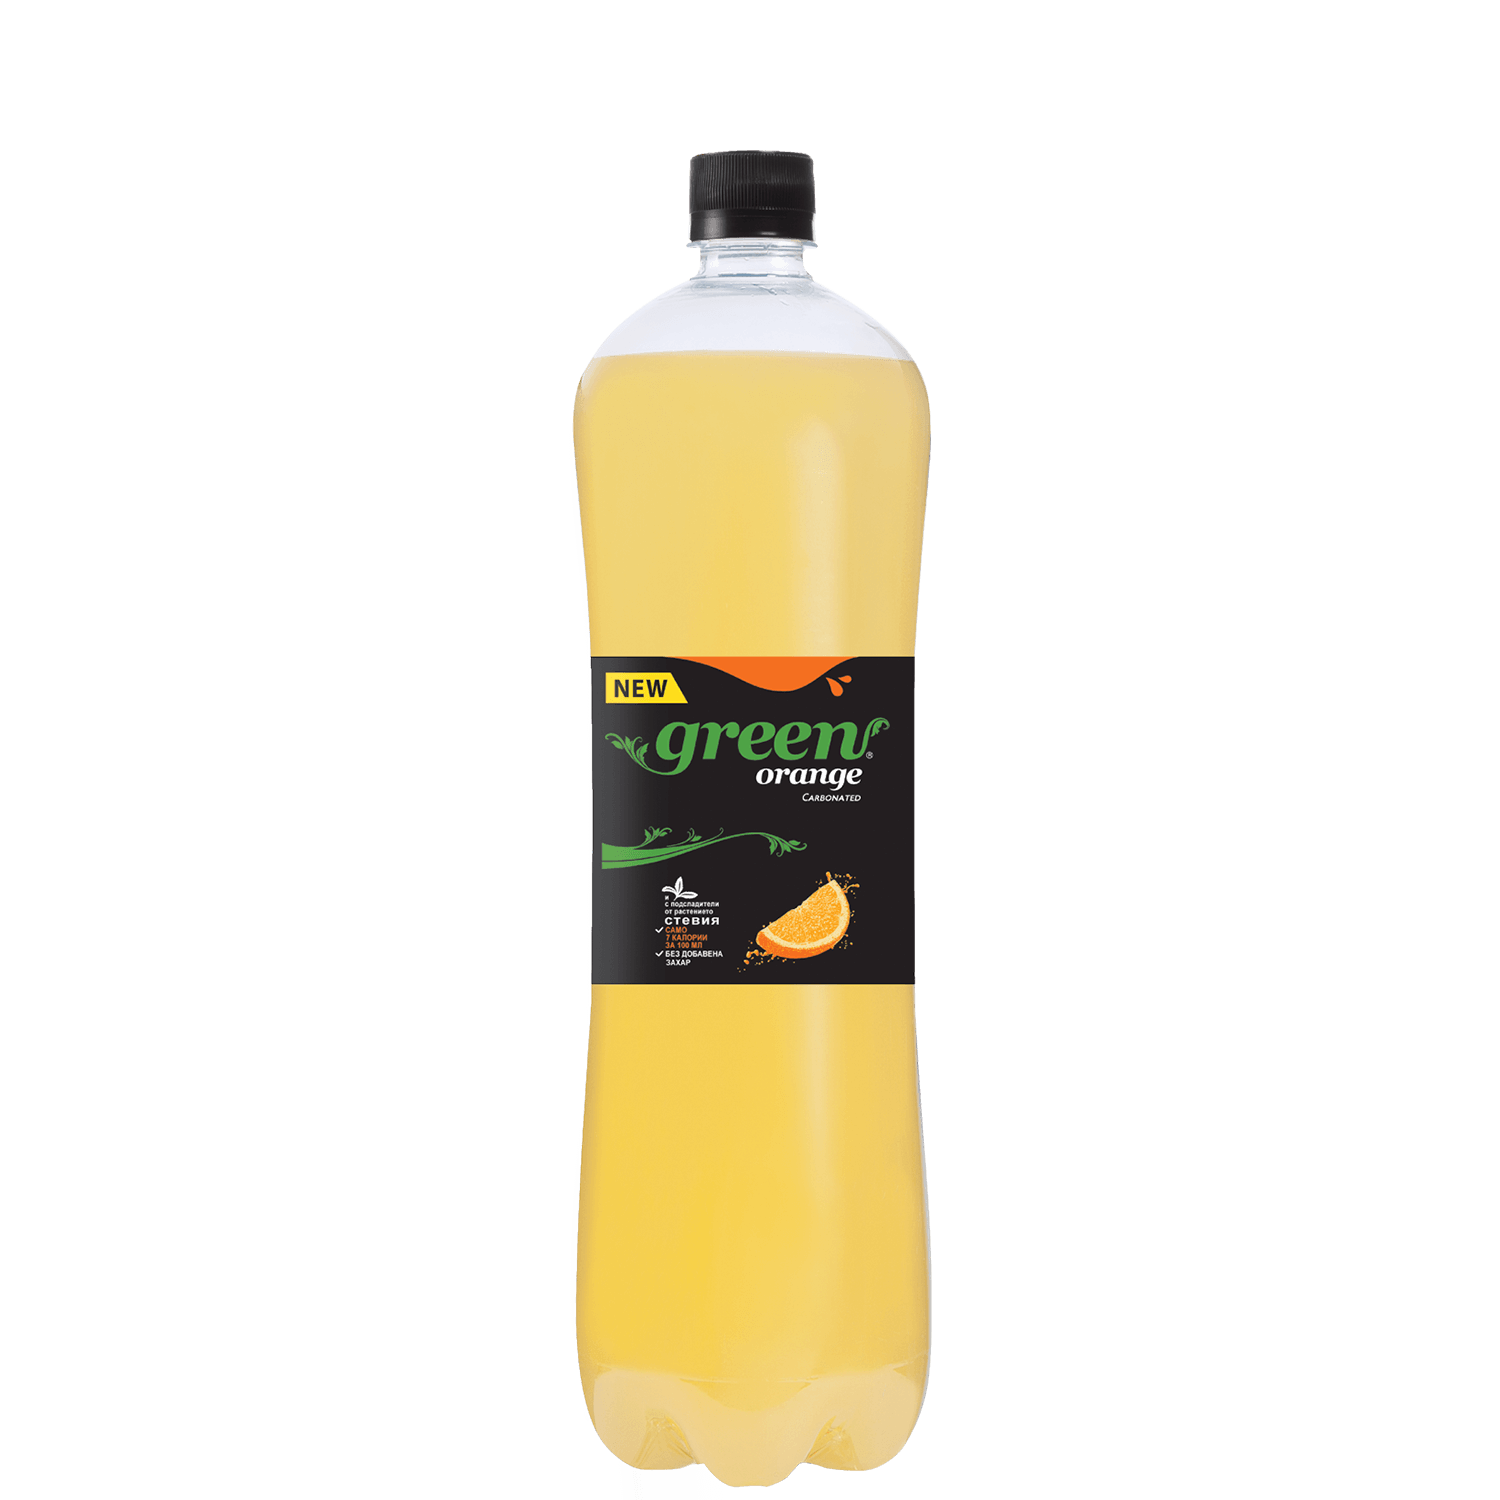 Green Orange - Bottle PET - 1,5Lt